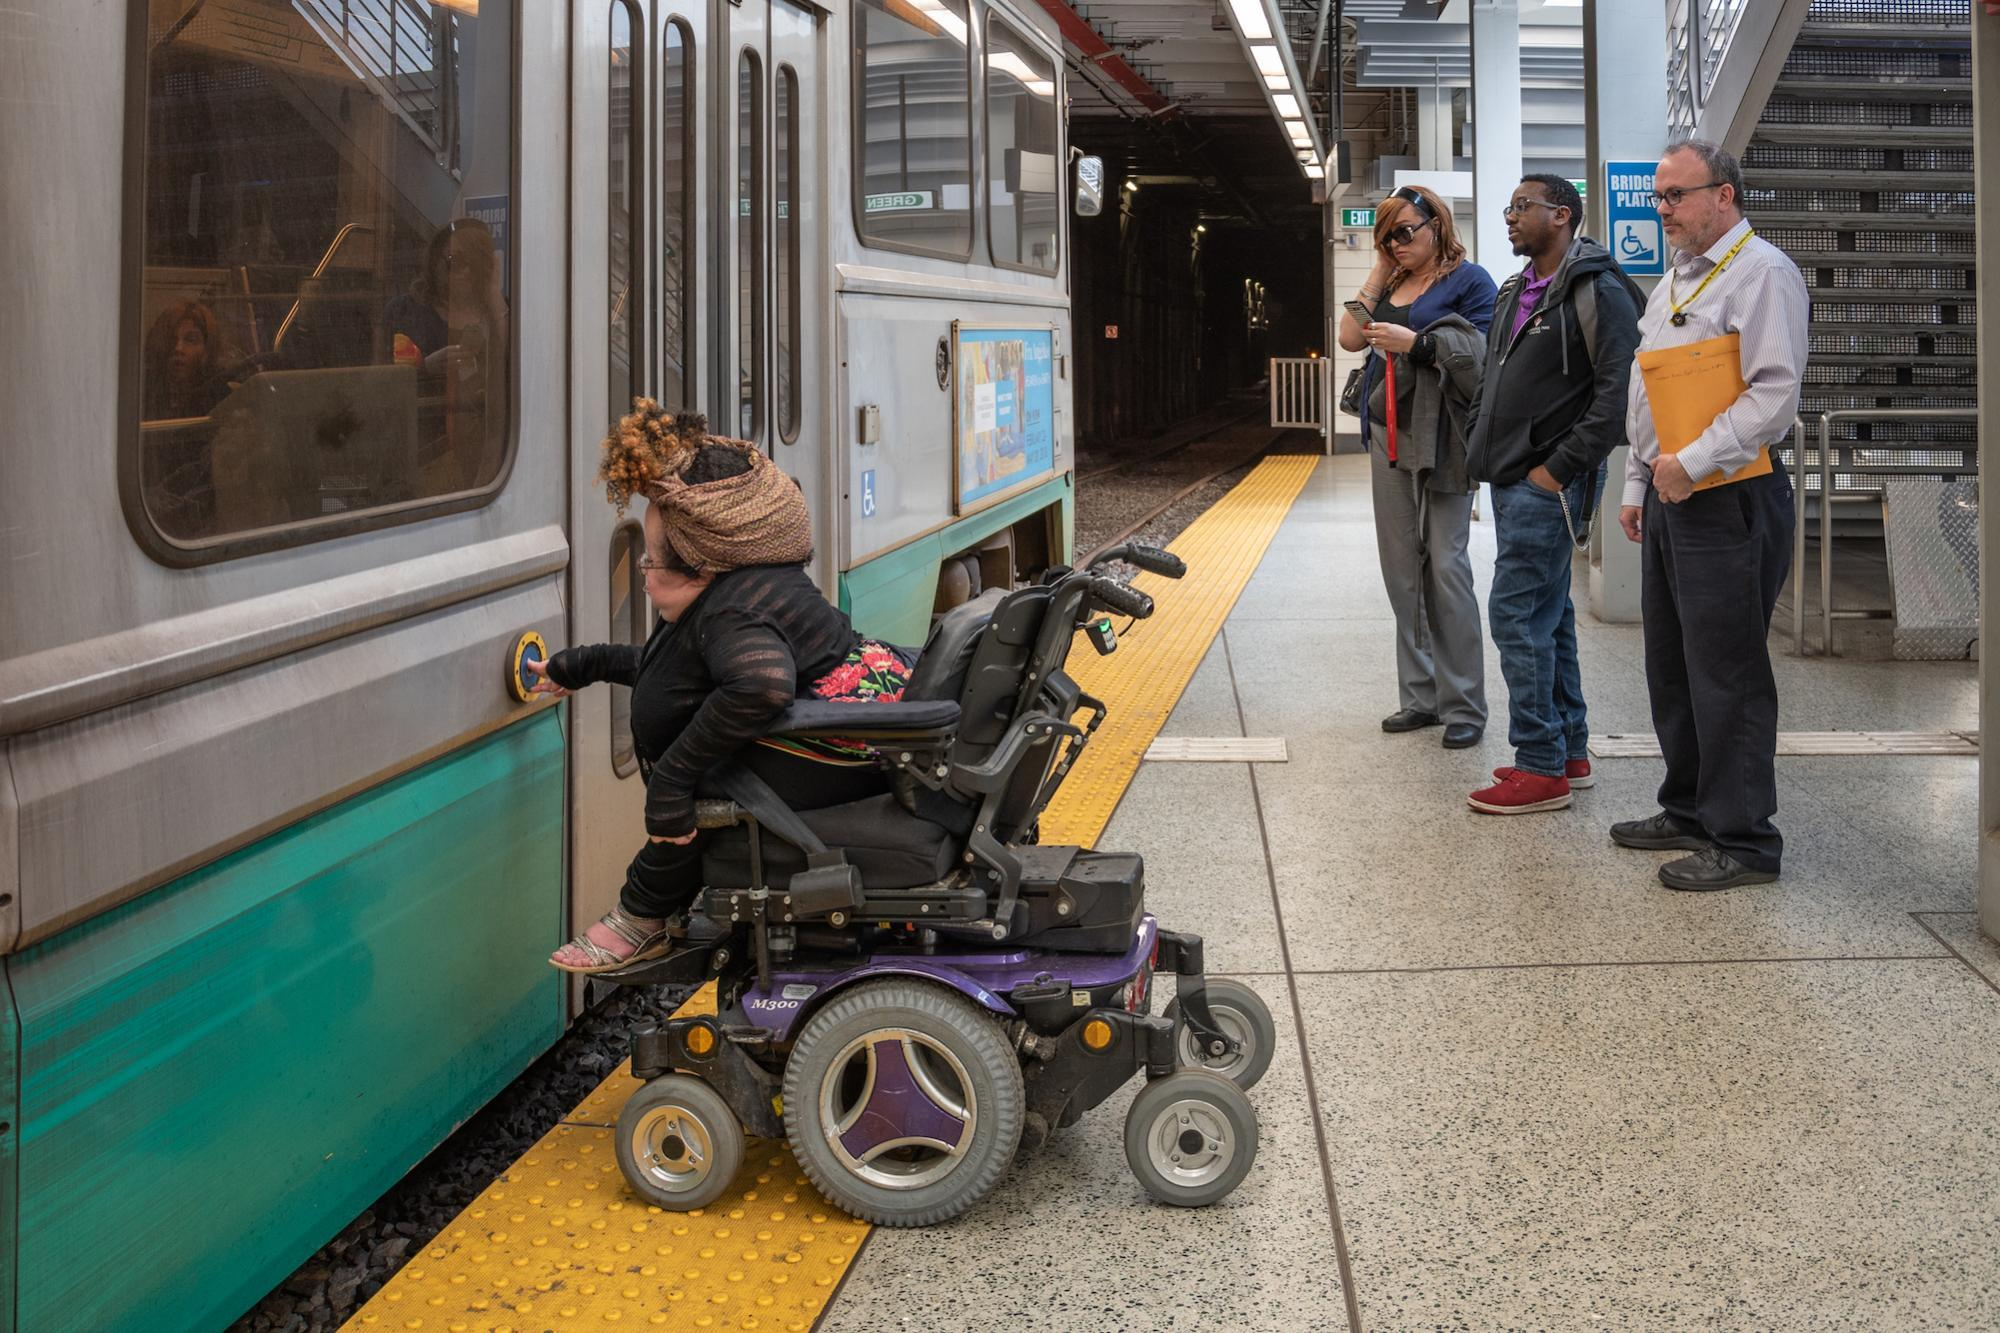 A person in a wheeled mobility device presses the accessibility button on a Green Line train at Government Center Station.